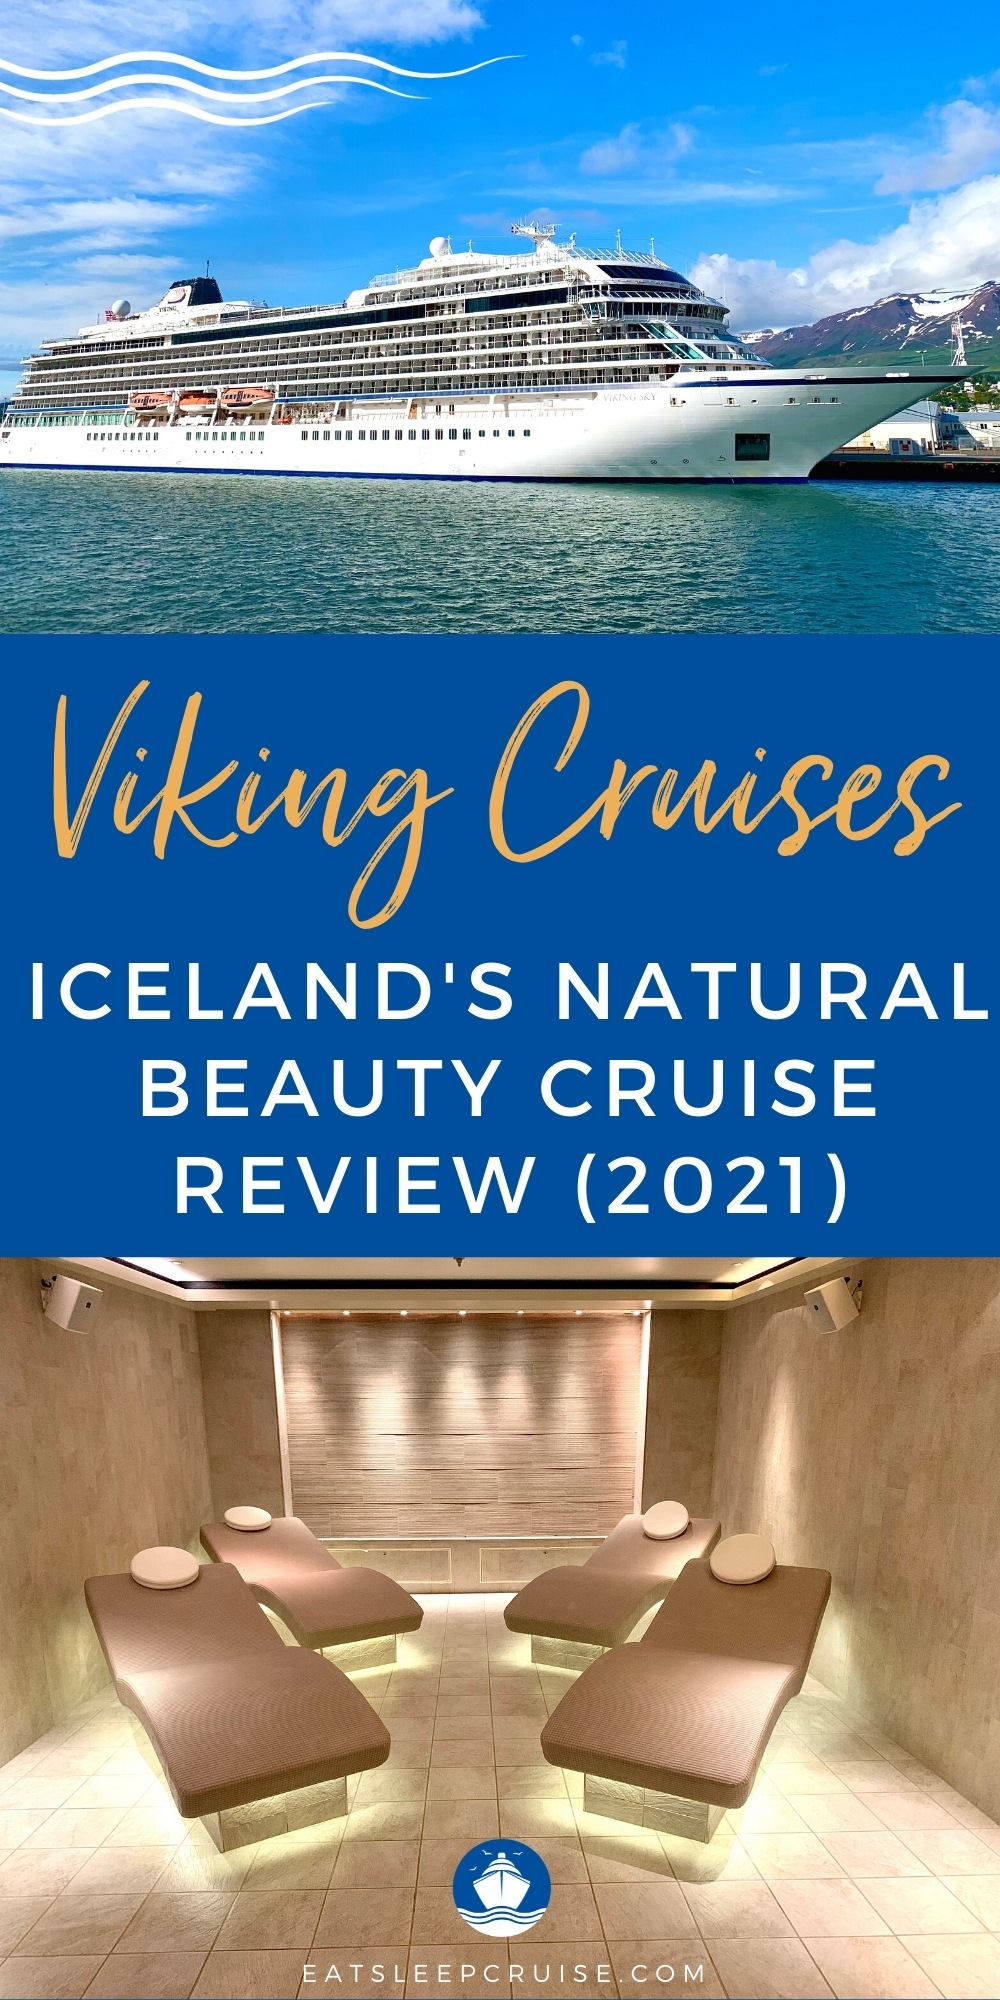 Viking Iceland's Natural Beauty Cruise Review 2021